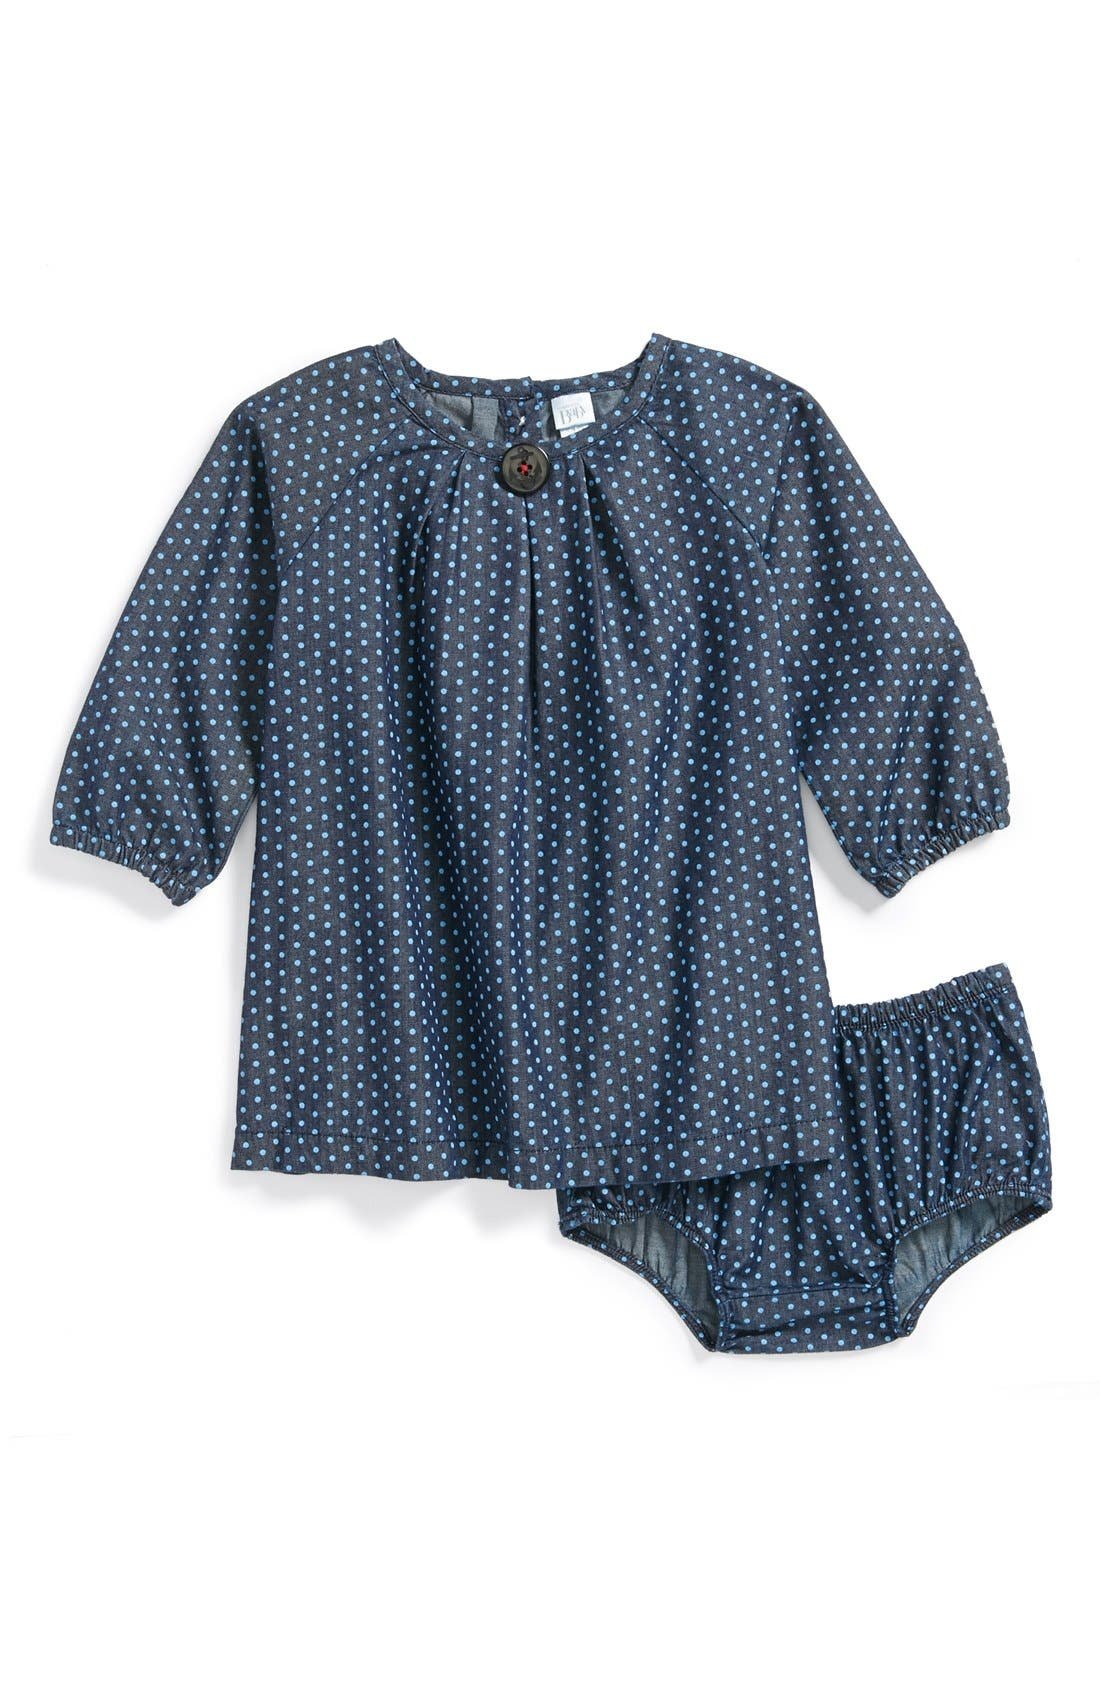 Main Image - Nordstrom Baby Chambray Dress & Bloomers (Baby Girls)